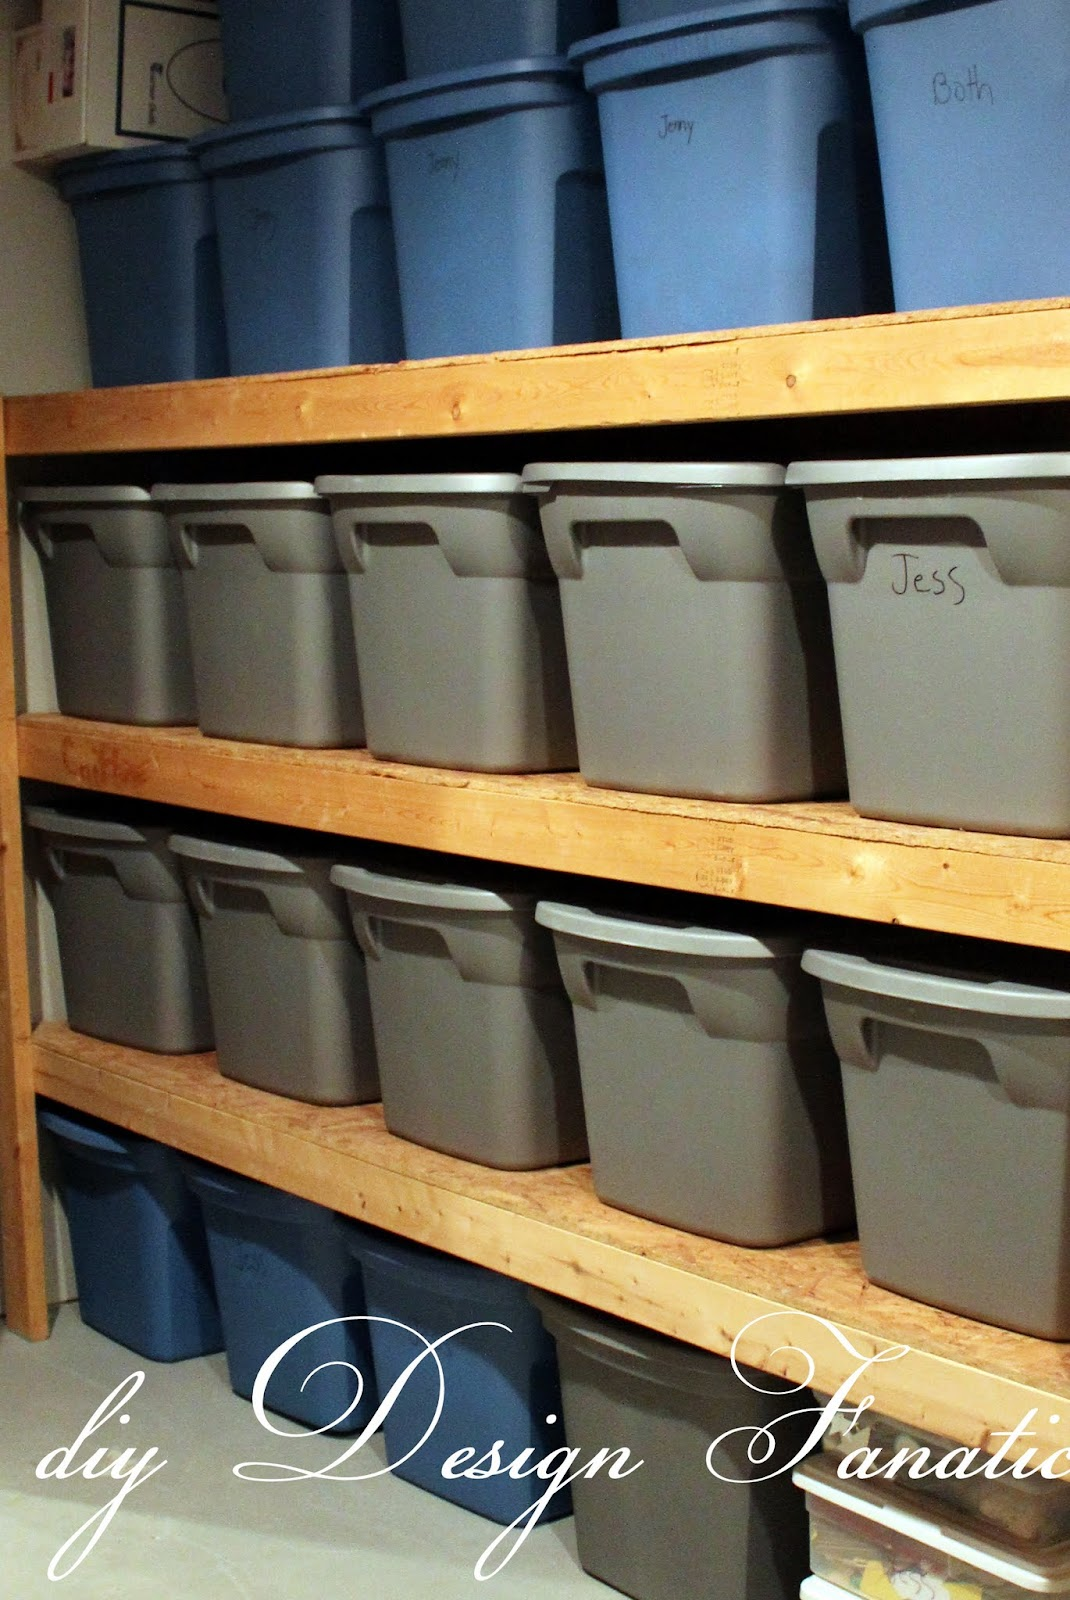 Storage, Diydesignfanatic.com, Storage Shelves, Diy Storage Shelves, Basement  Storage,